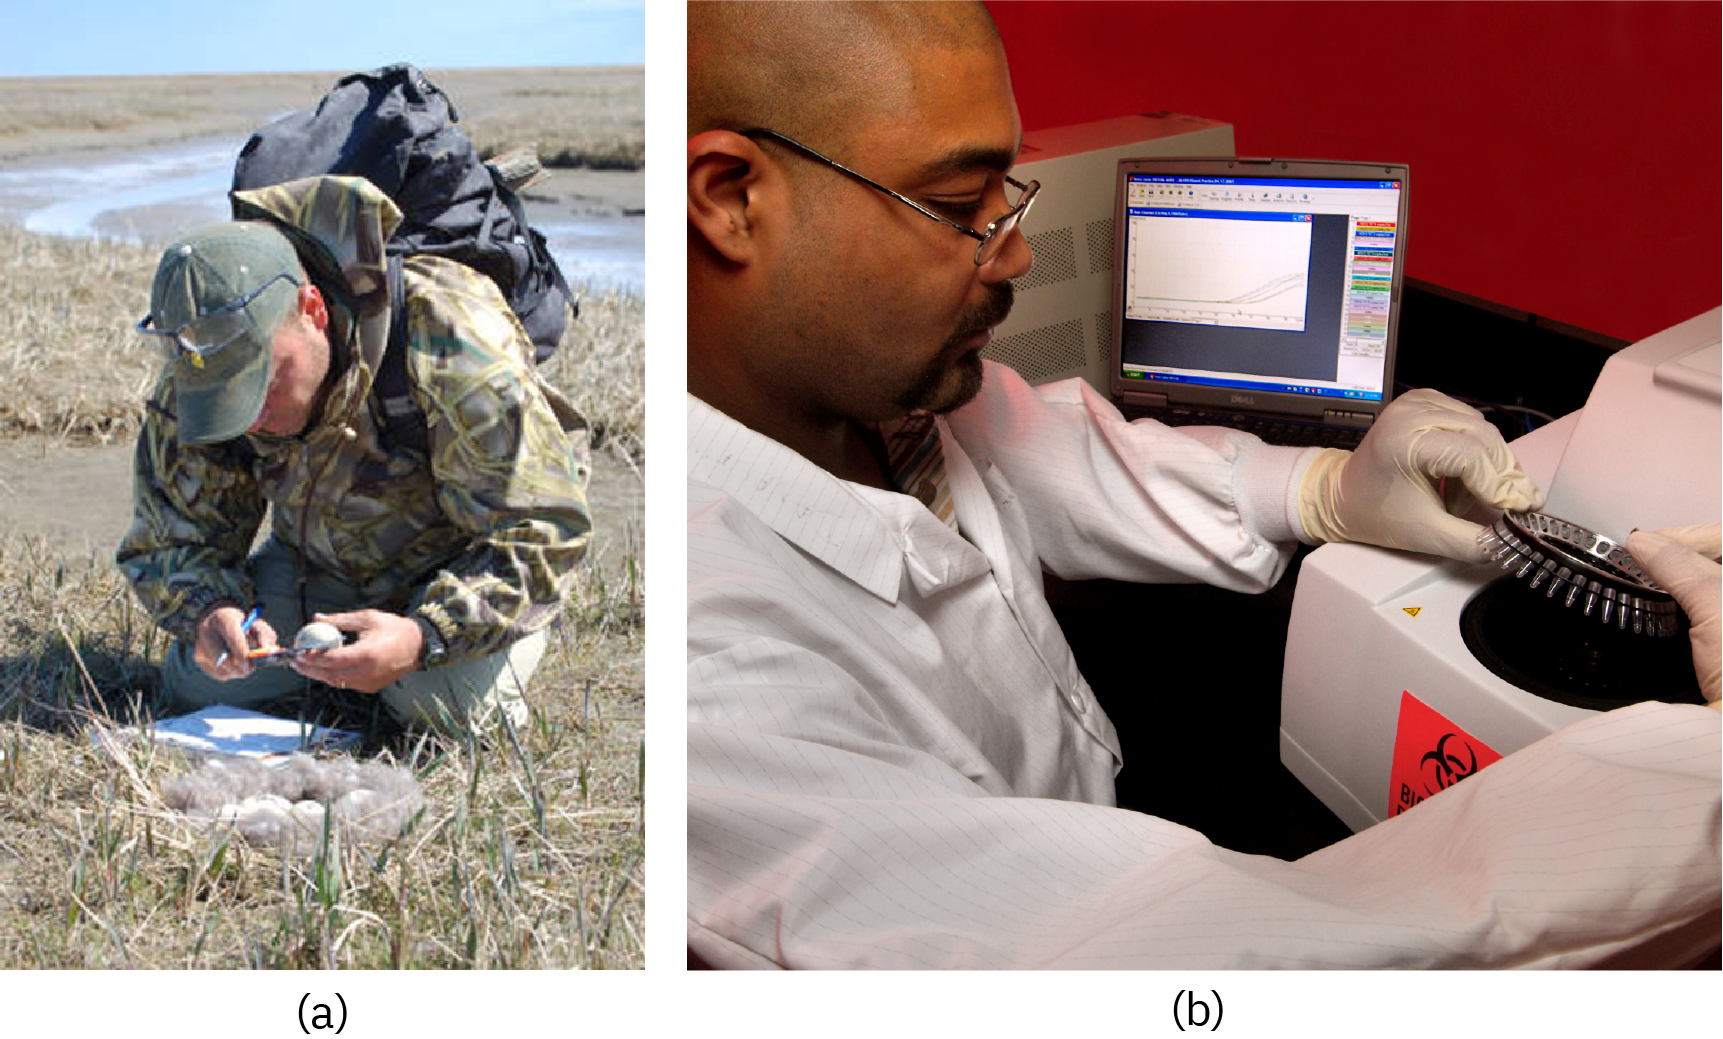 (a) A person in a field measuring an egg. (b) A person prepares an assay with a centerfuge.